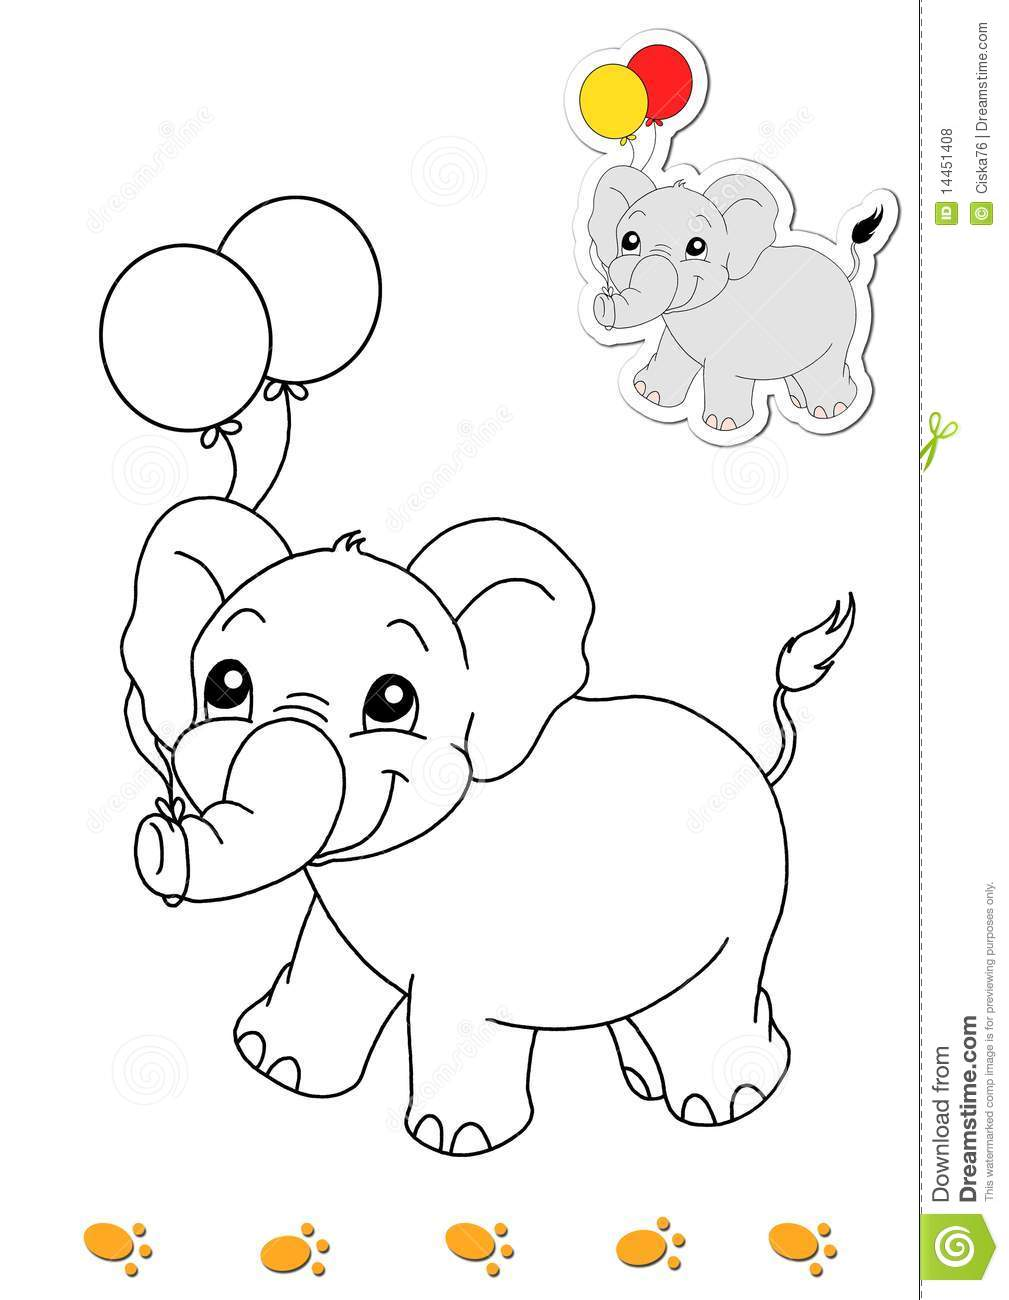 Coloring book of animals 8 elephant stock illustration Coloring book elephant